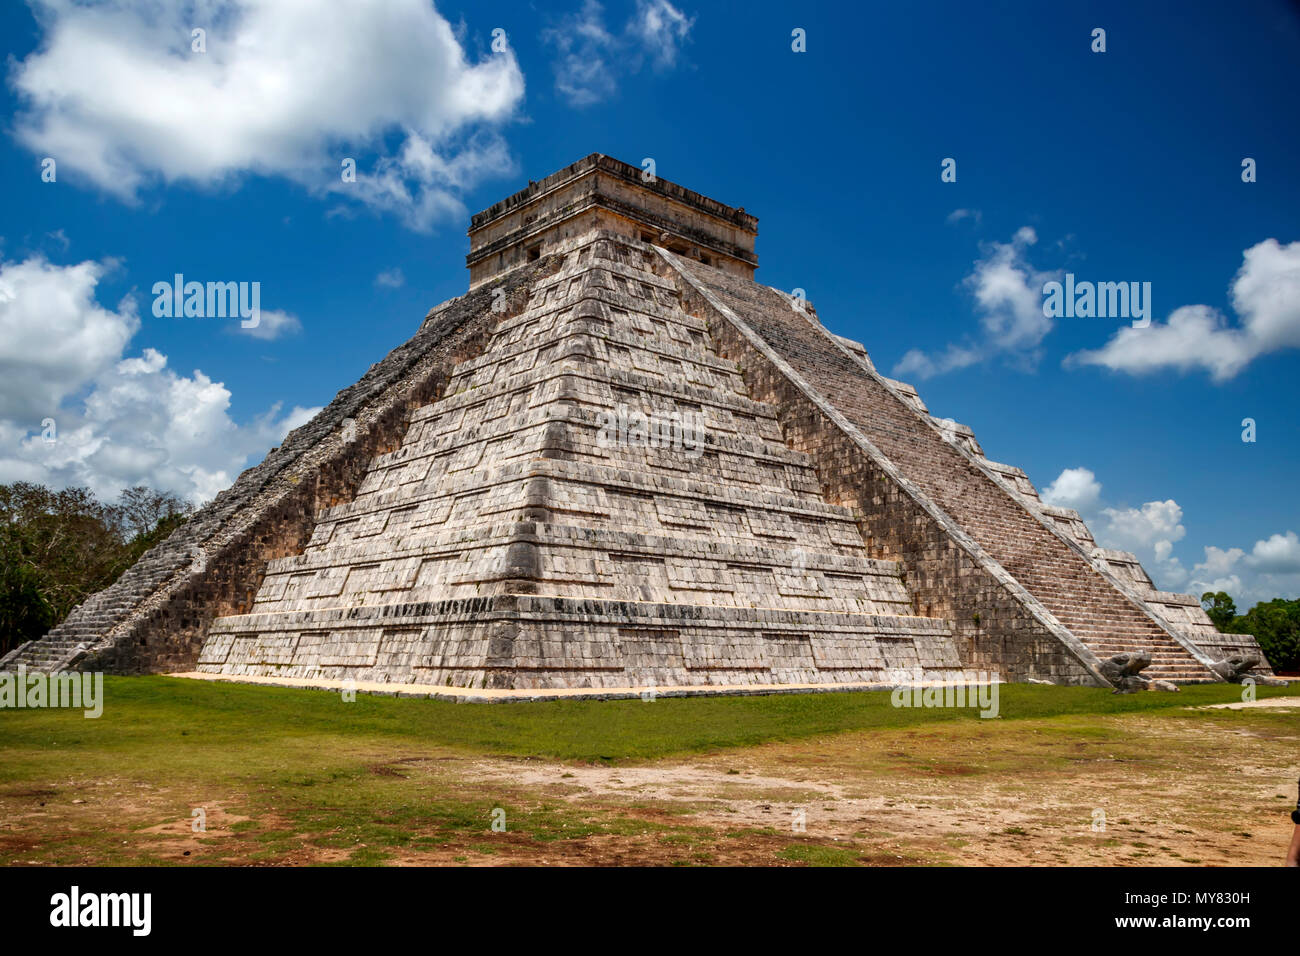 Two walls of the pyramid - Stock Image